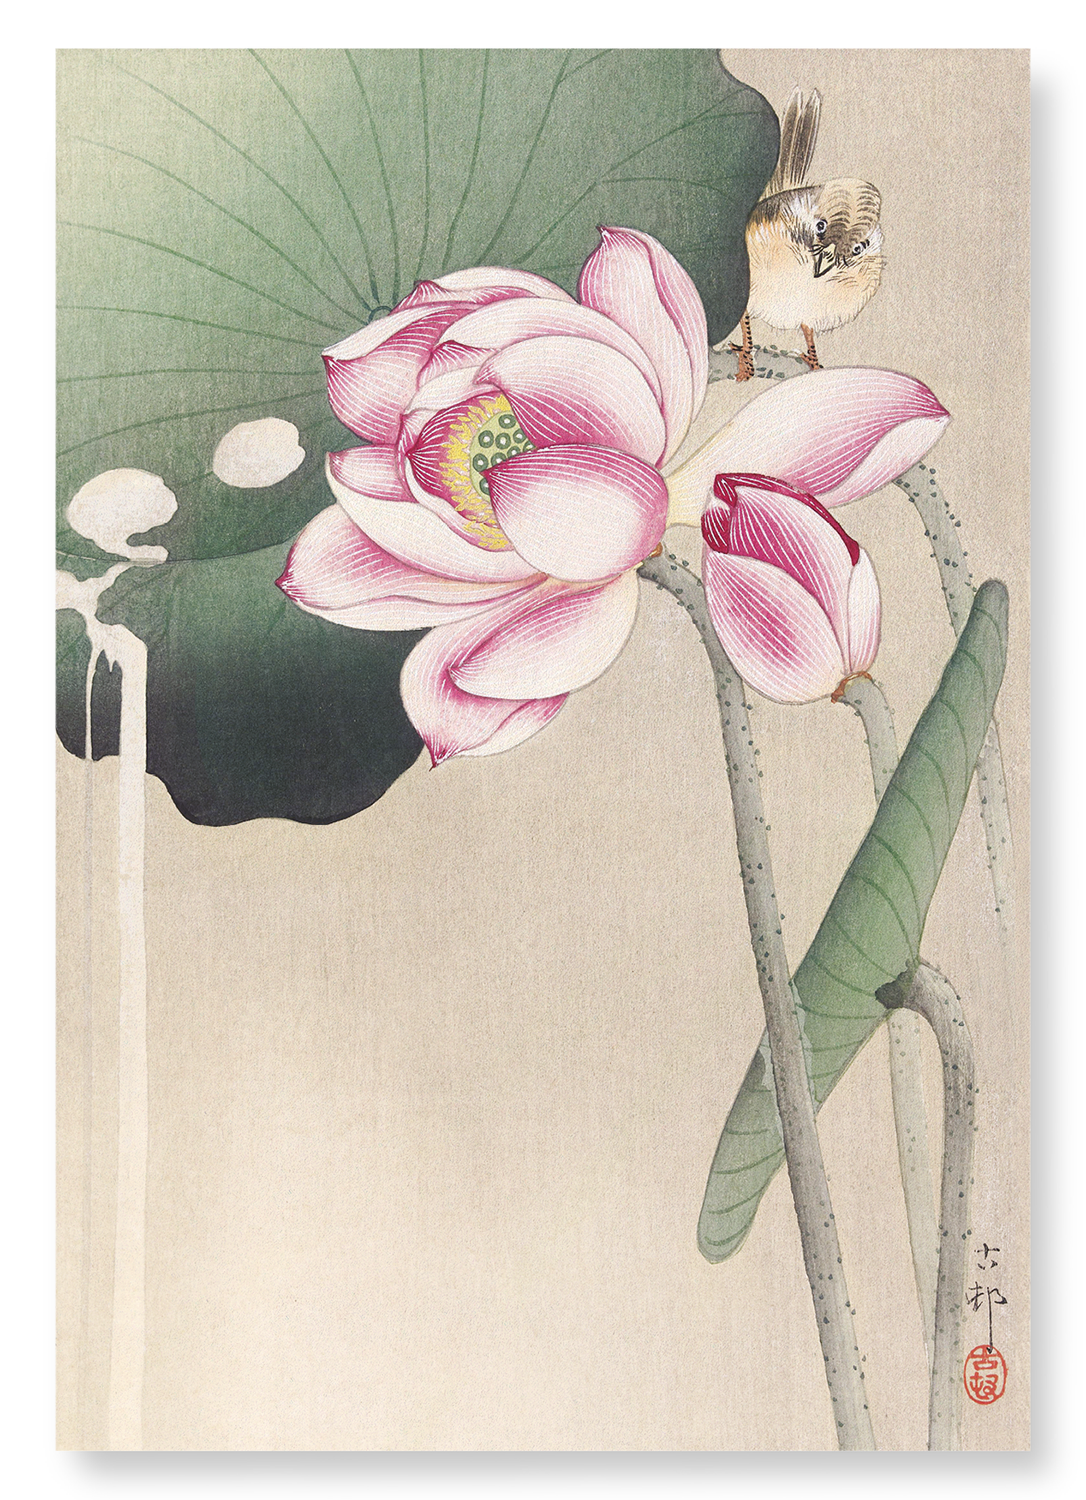 SONGBIRD AND LOTUS: 2xPrints